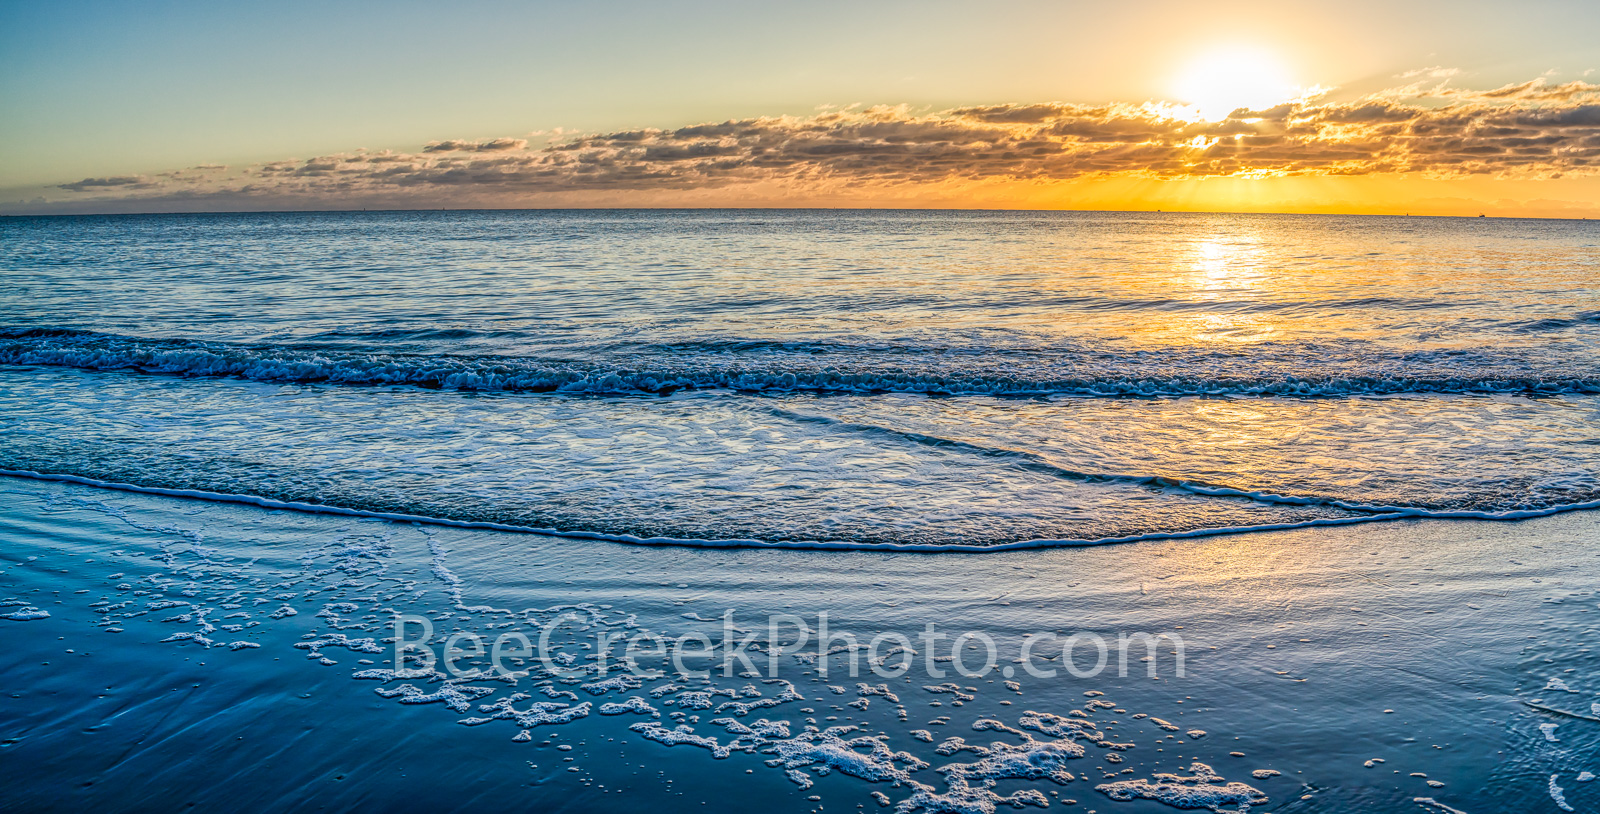 beach scene, seascape, sea and sand, ocean, waterscape, surf, tide, ocean scene,  beach scenery, beach, beaches, georgia beach, alantic ocean, southern usa, beach sunrise, blue water, georgia coastlin, photo